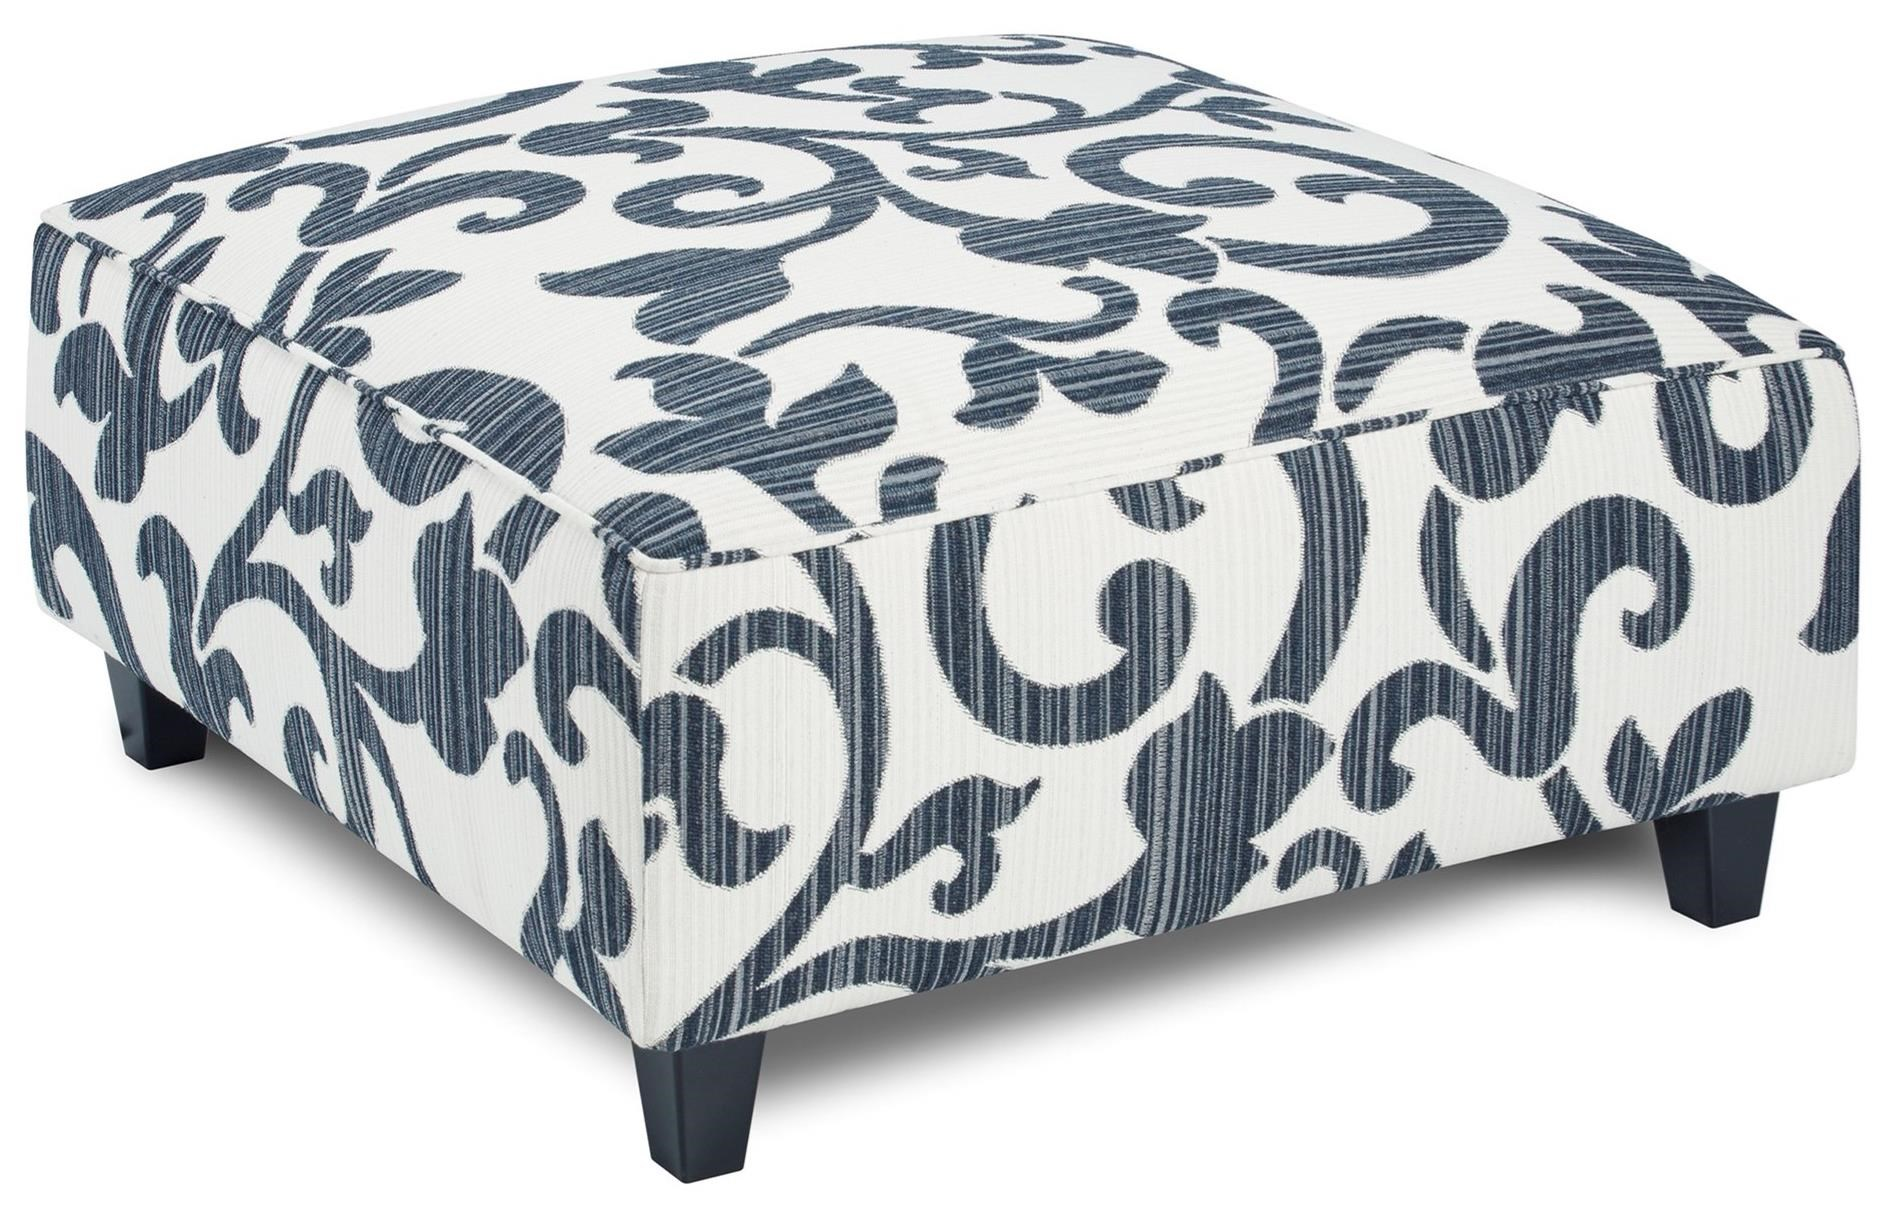 109 Square Ottoman by FN at Lindy's Furniture Company